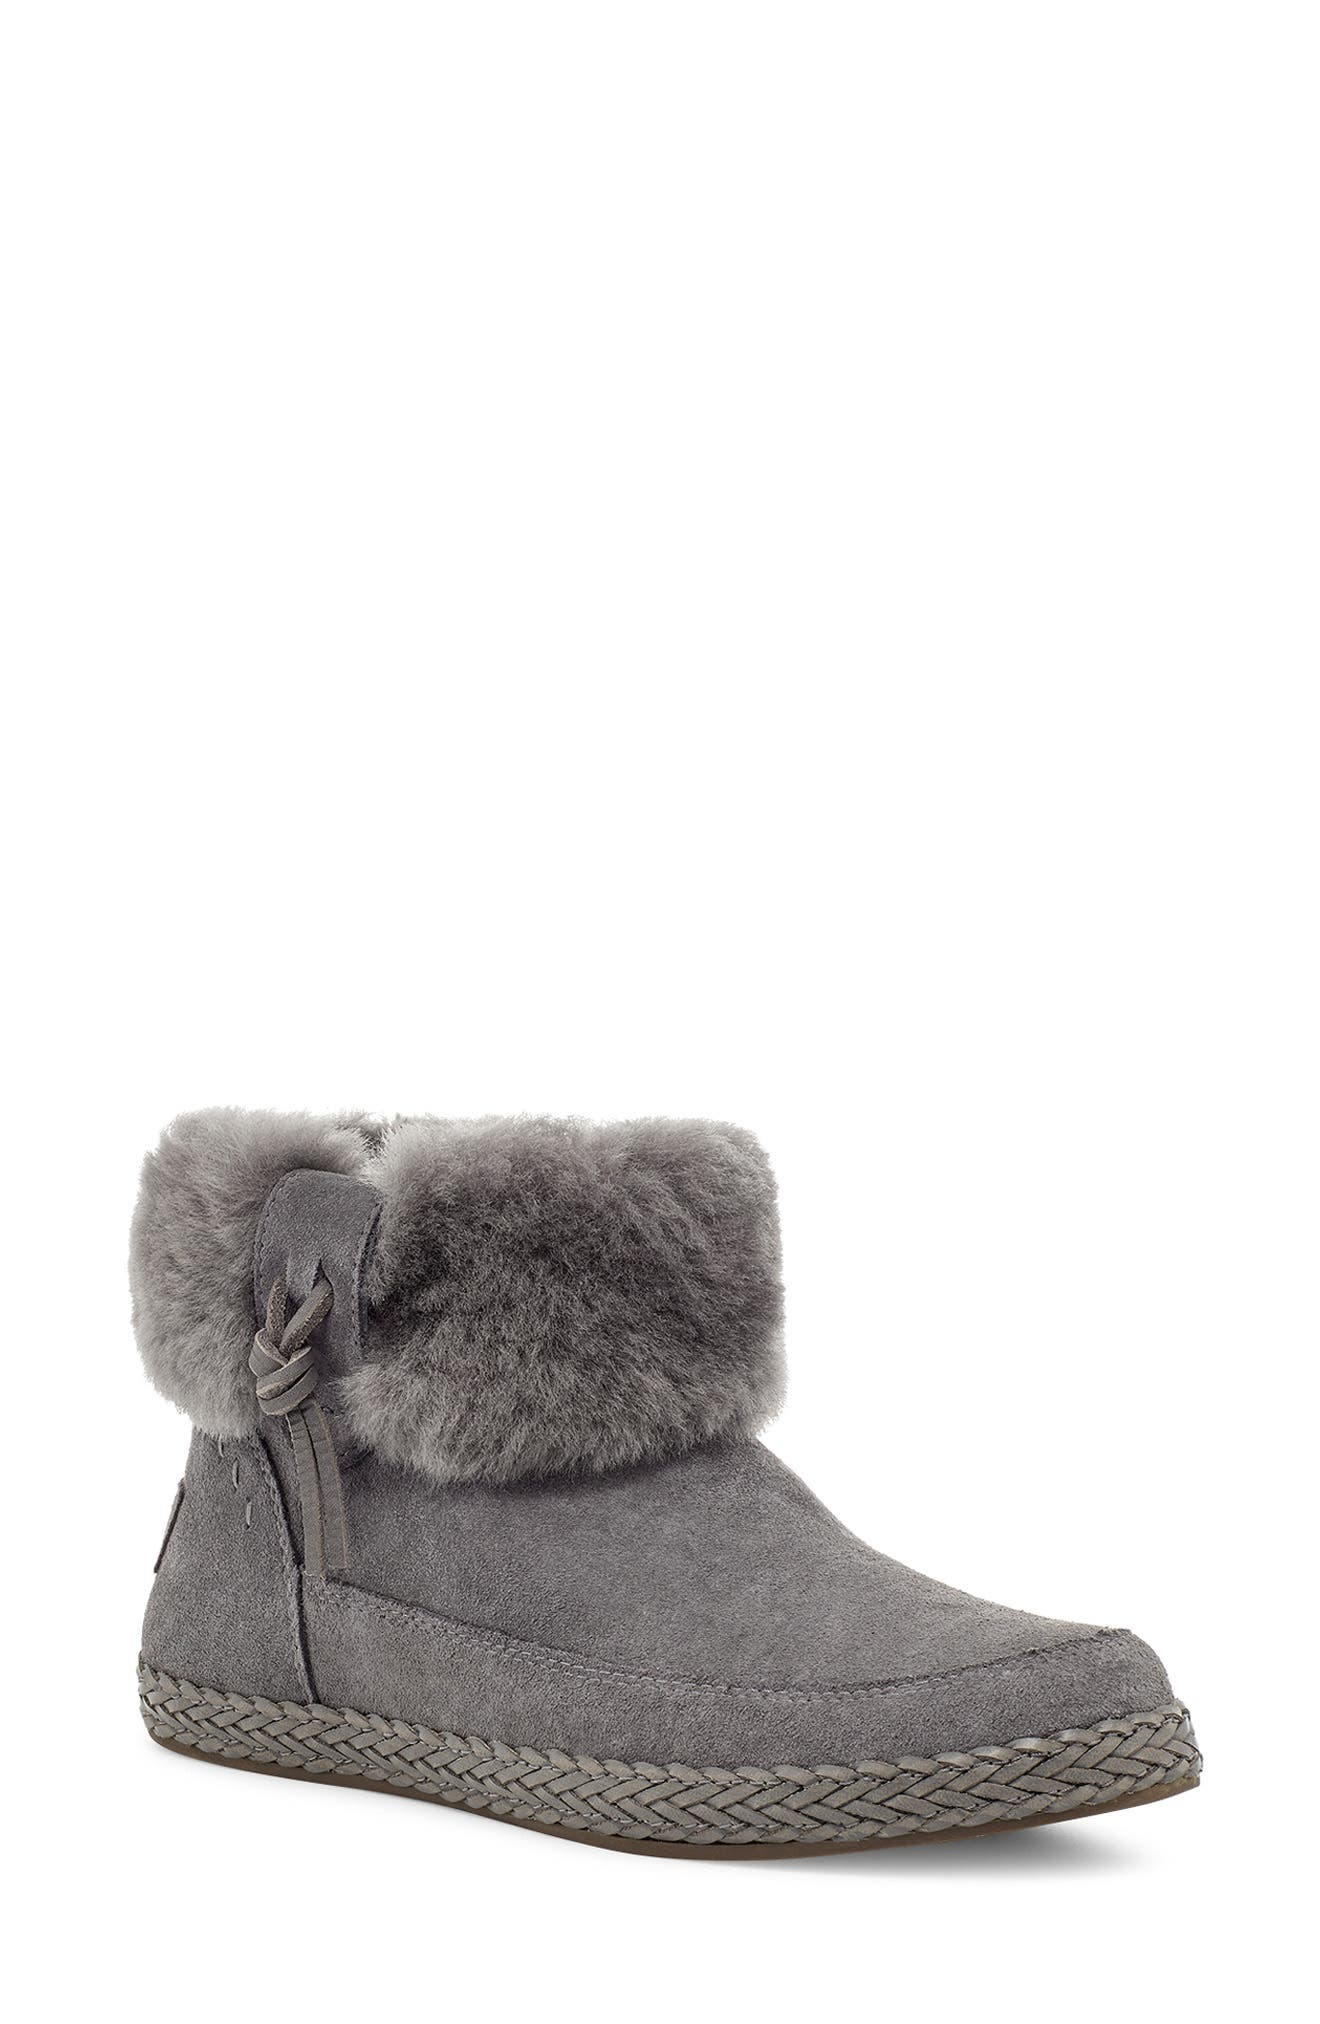 Image of UGG Elowen Genuine Shearling Bootie